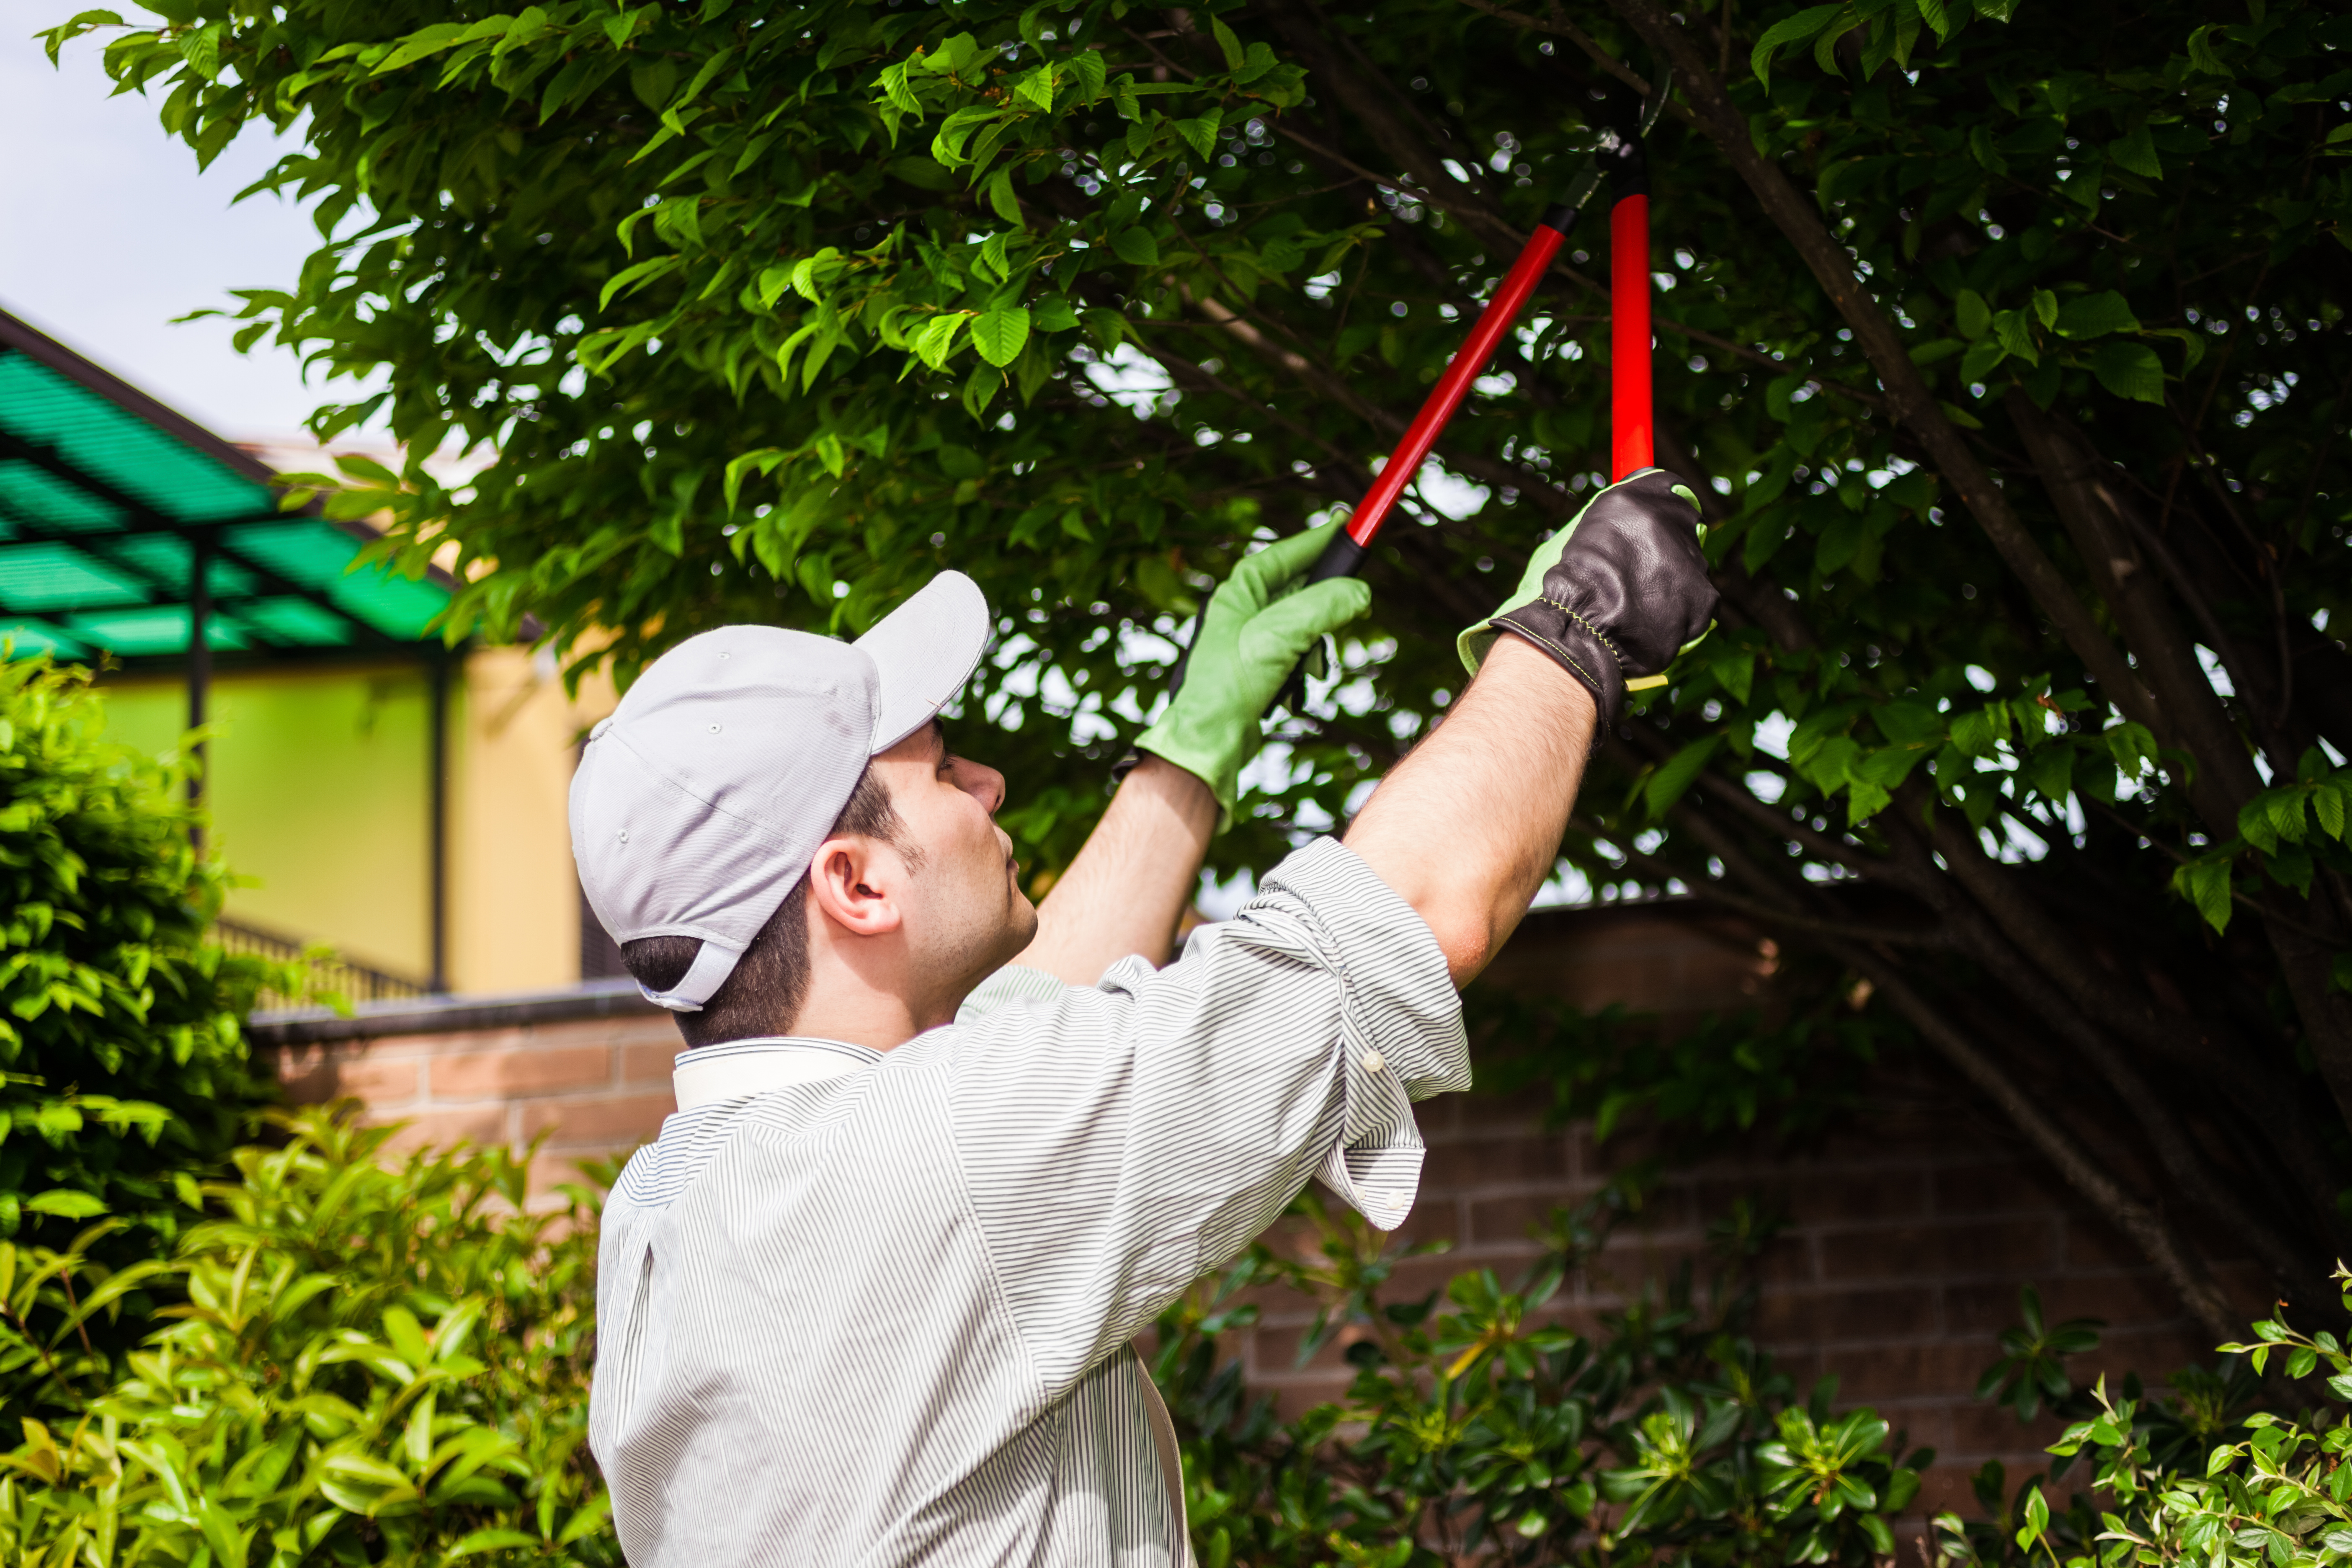 Pruning Trees to Avoid Fire Hazards